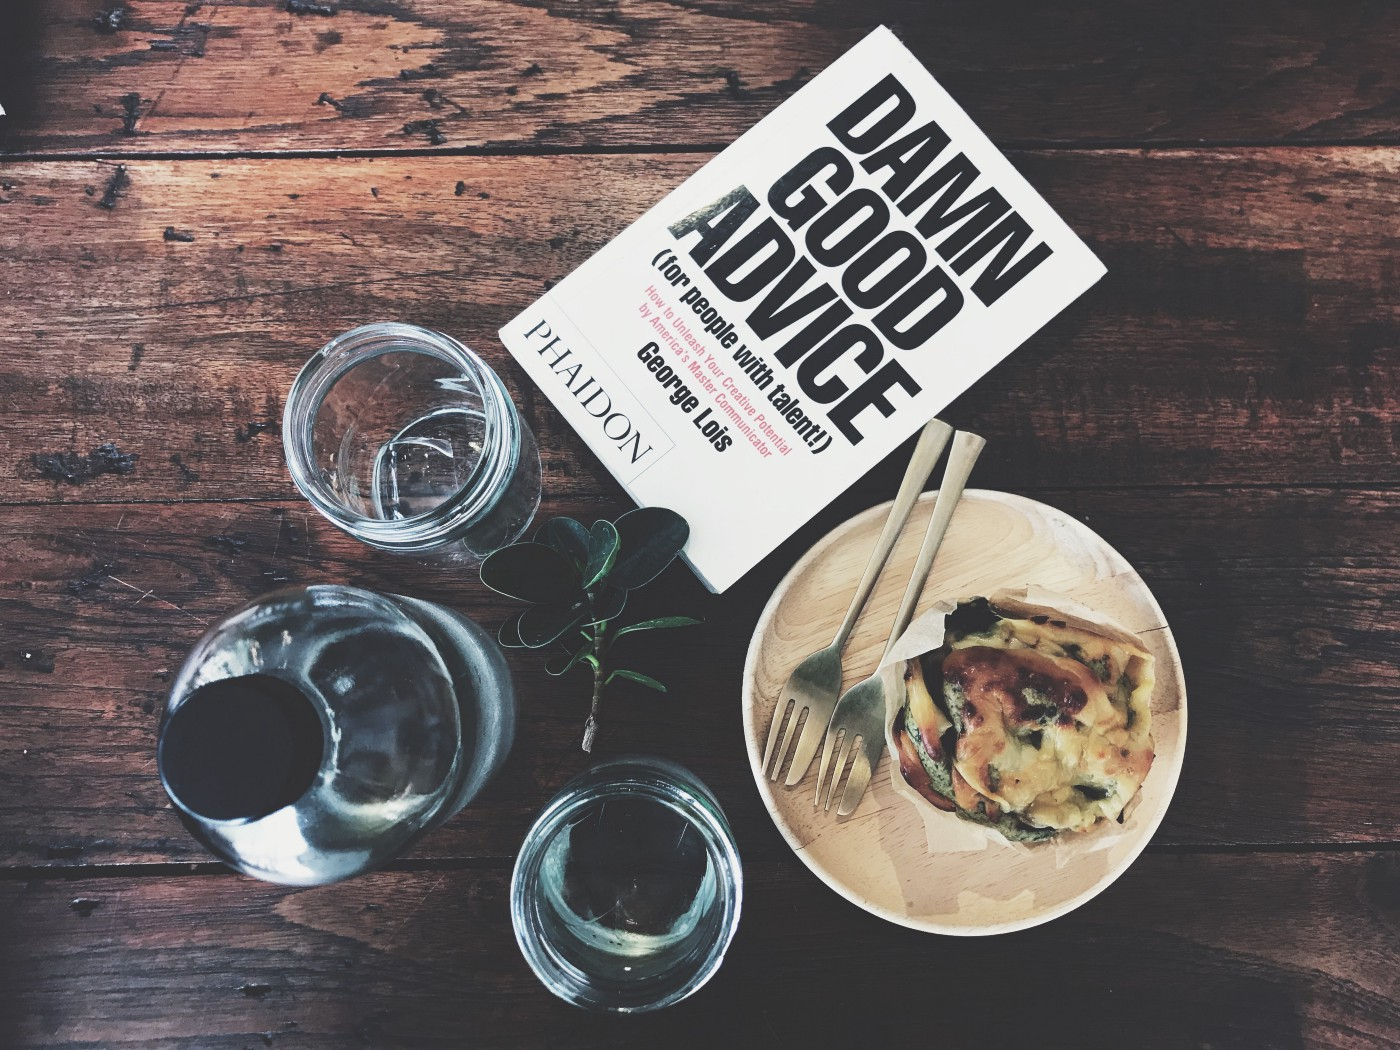 Book and food on table